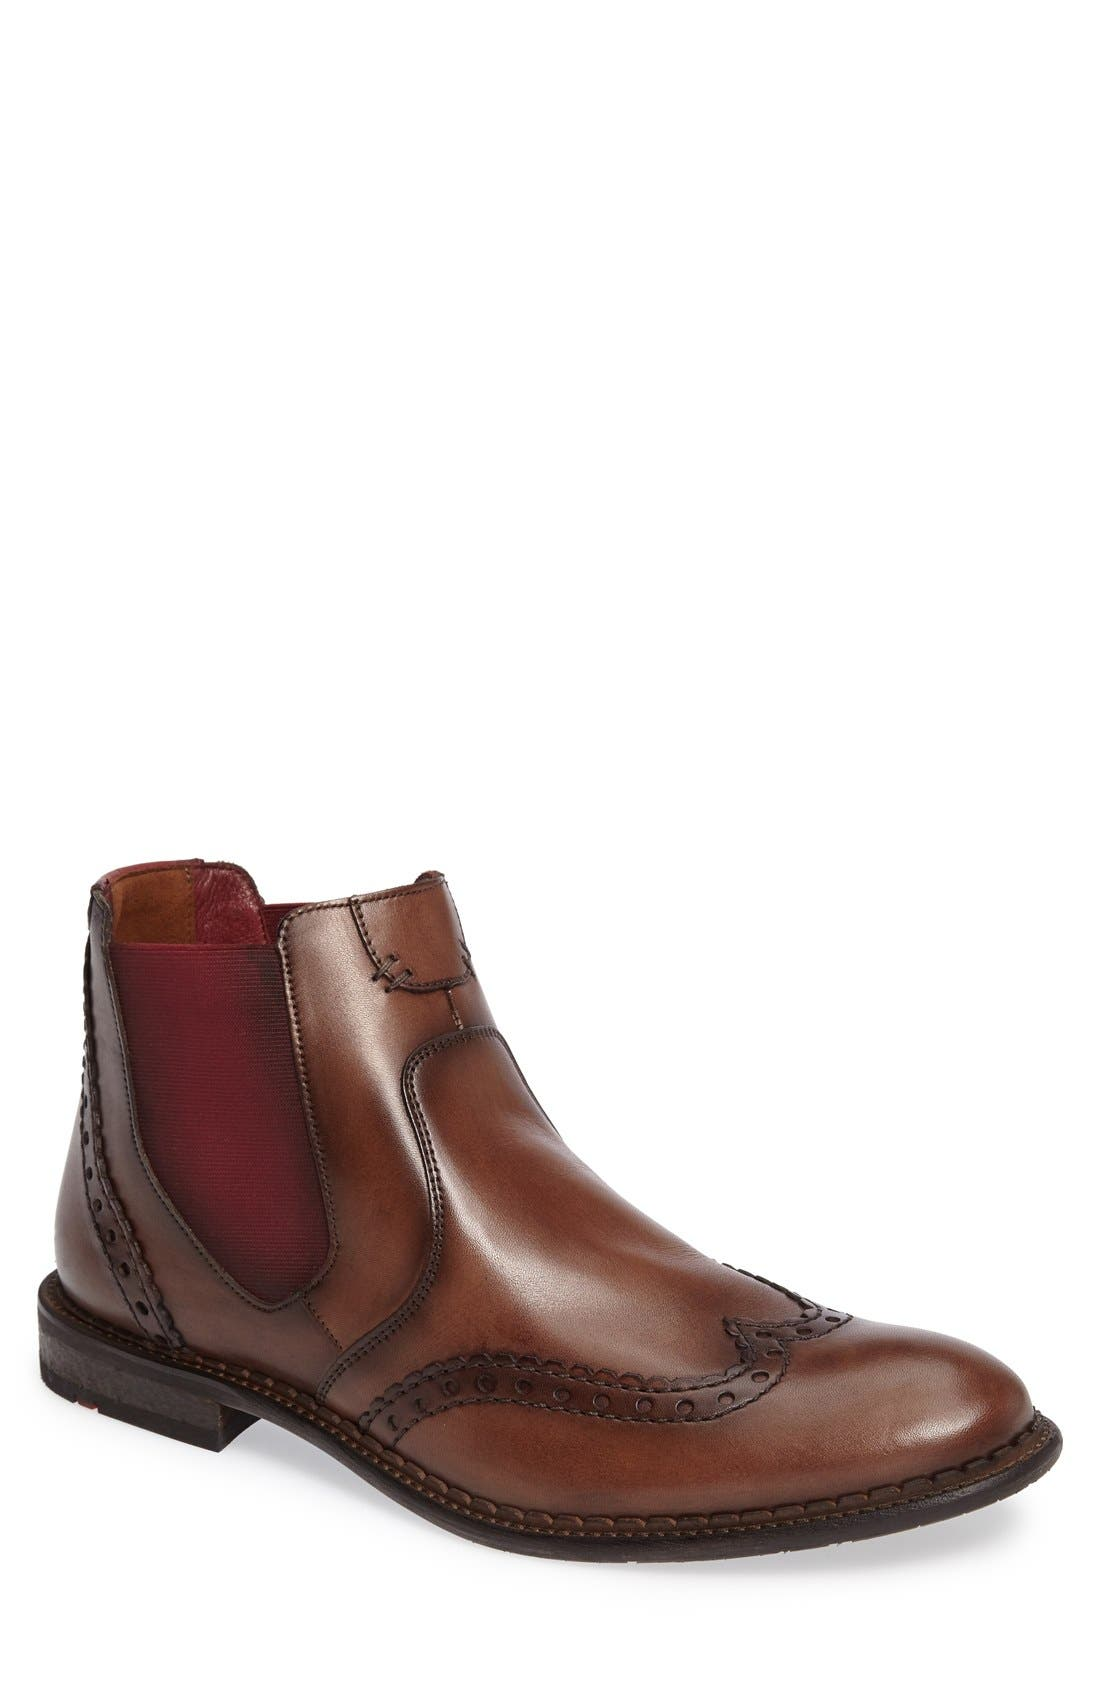 Grenoble Wingtip Chelsea Boot,                         Main,                         color, 200